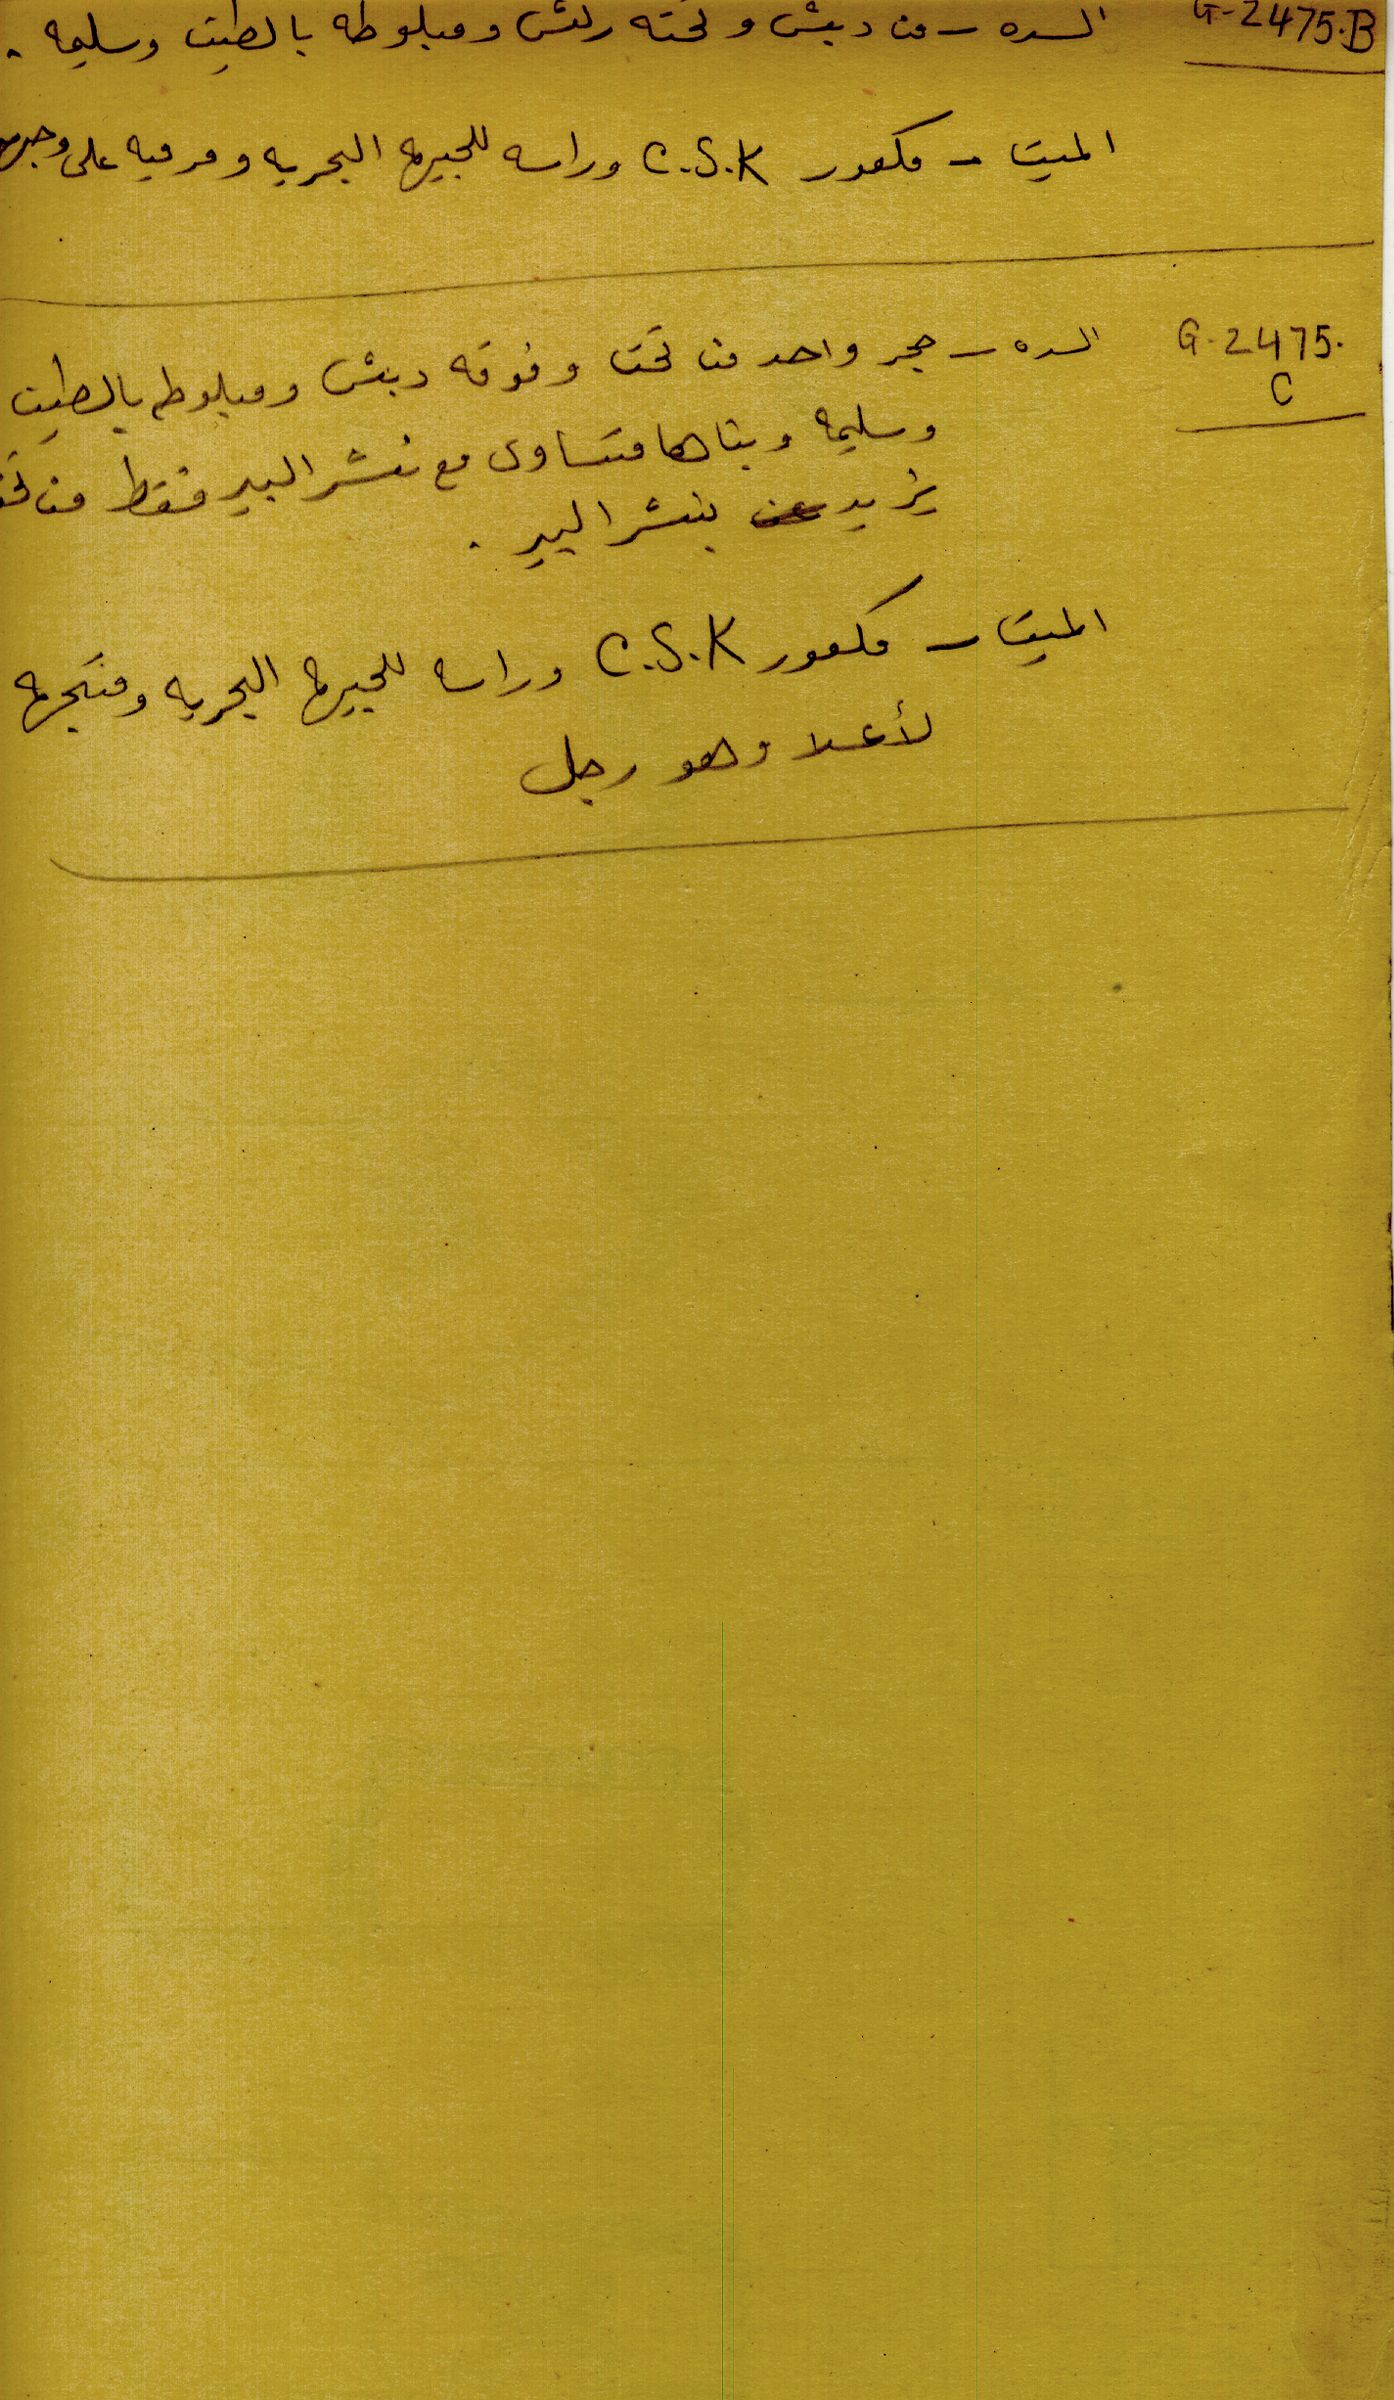 Notes: G 2475, Shaft B and C, notes (in Arabic)